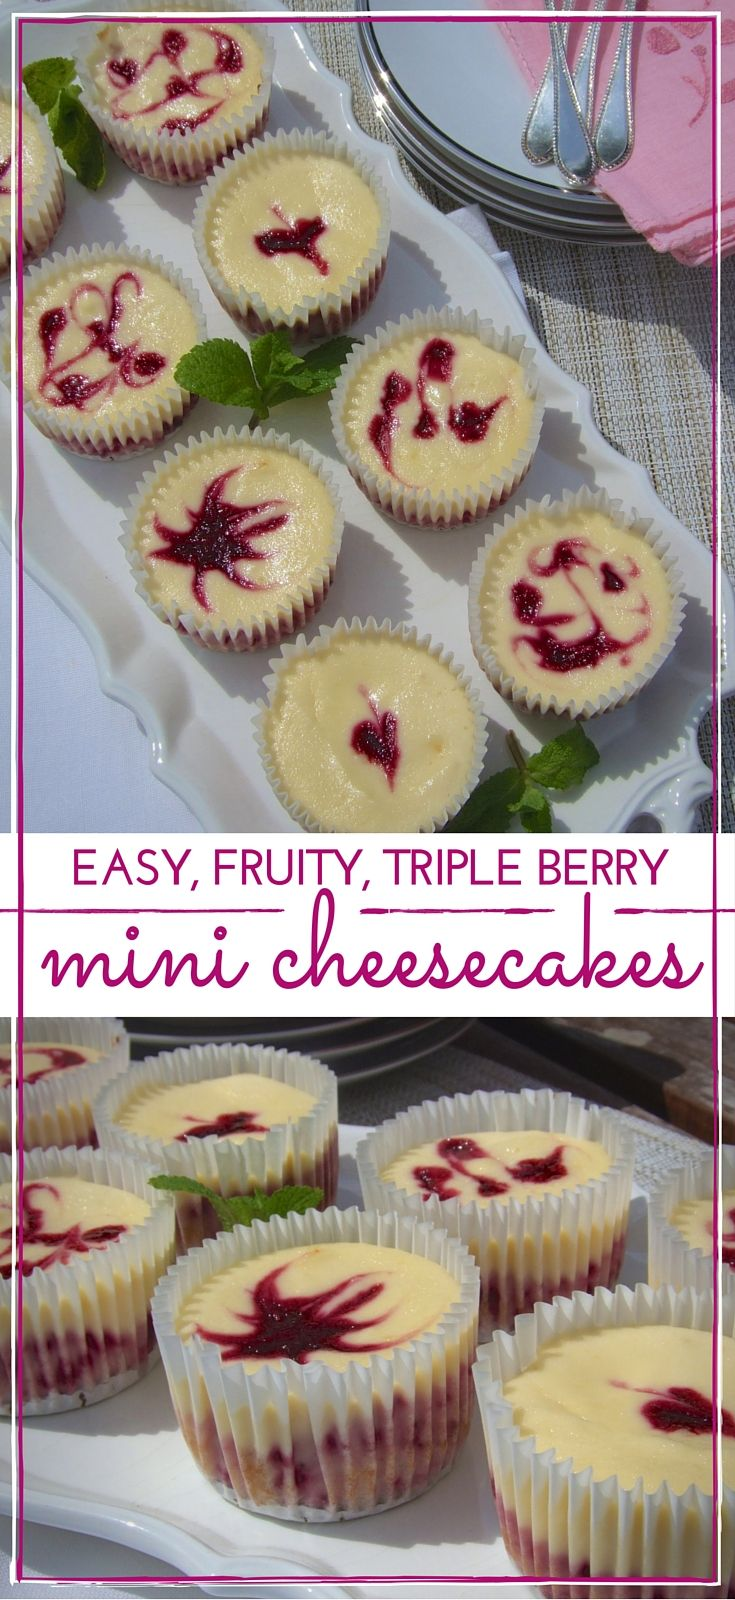 Fruity berry cheesecake topped by a plain cheesecake layer, & decorated with berry syrup swirls. These cute & easy individual cheesecakes are just divine!